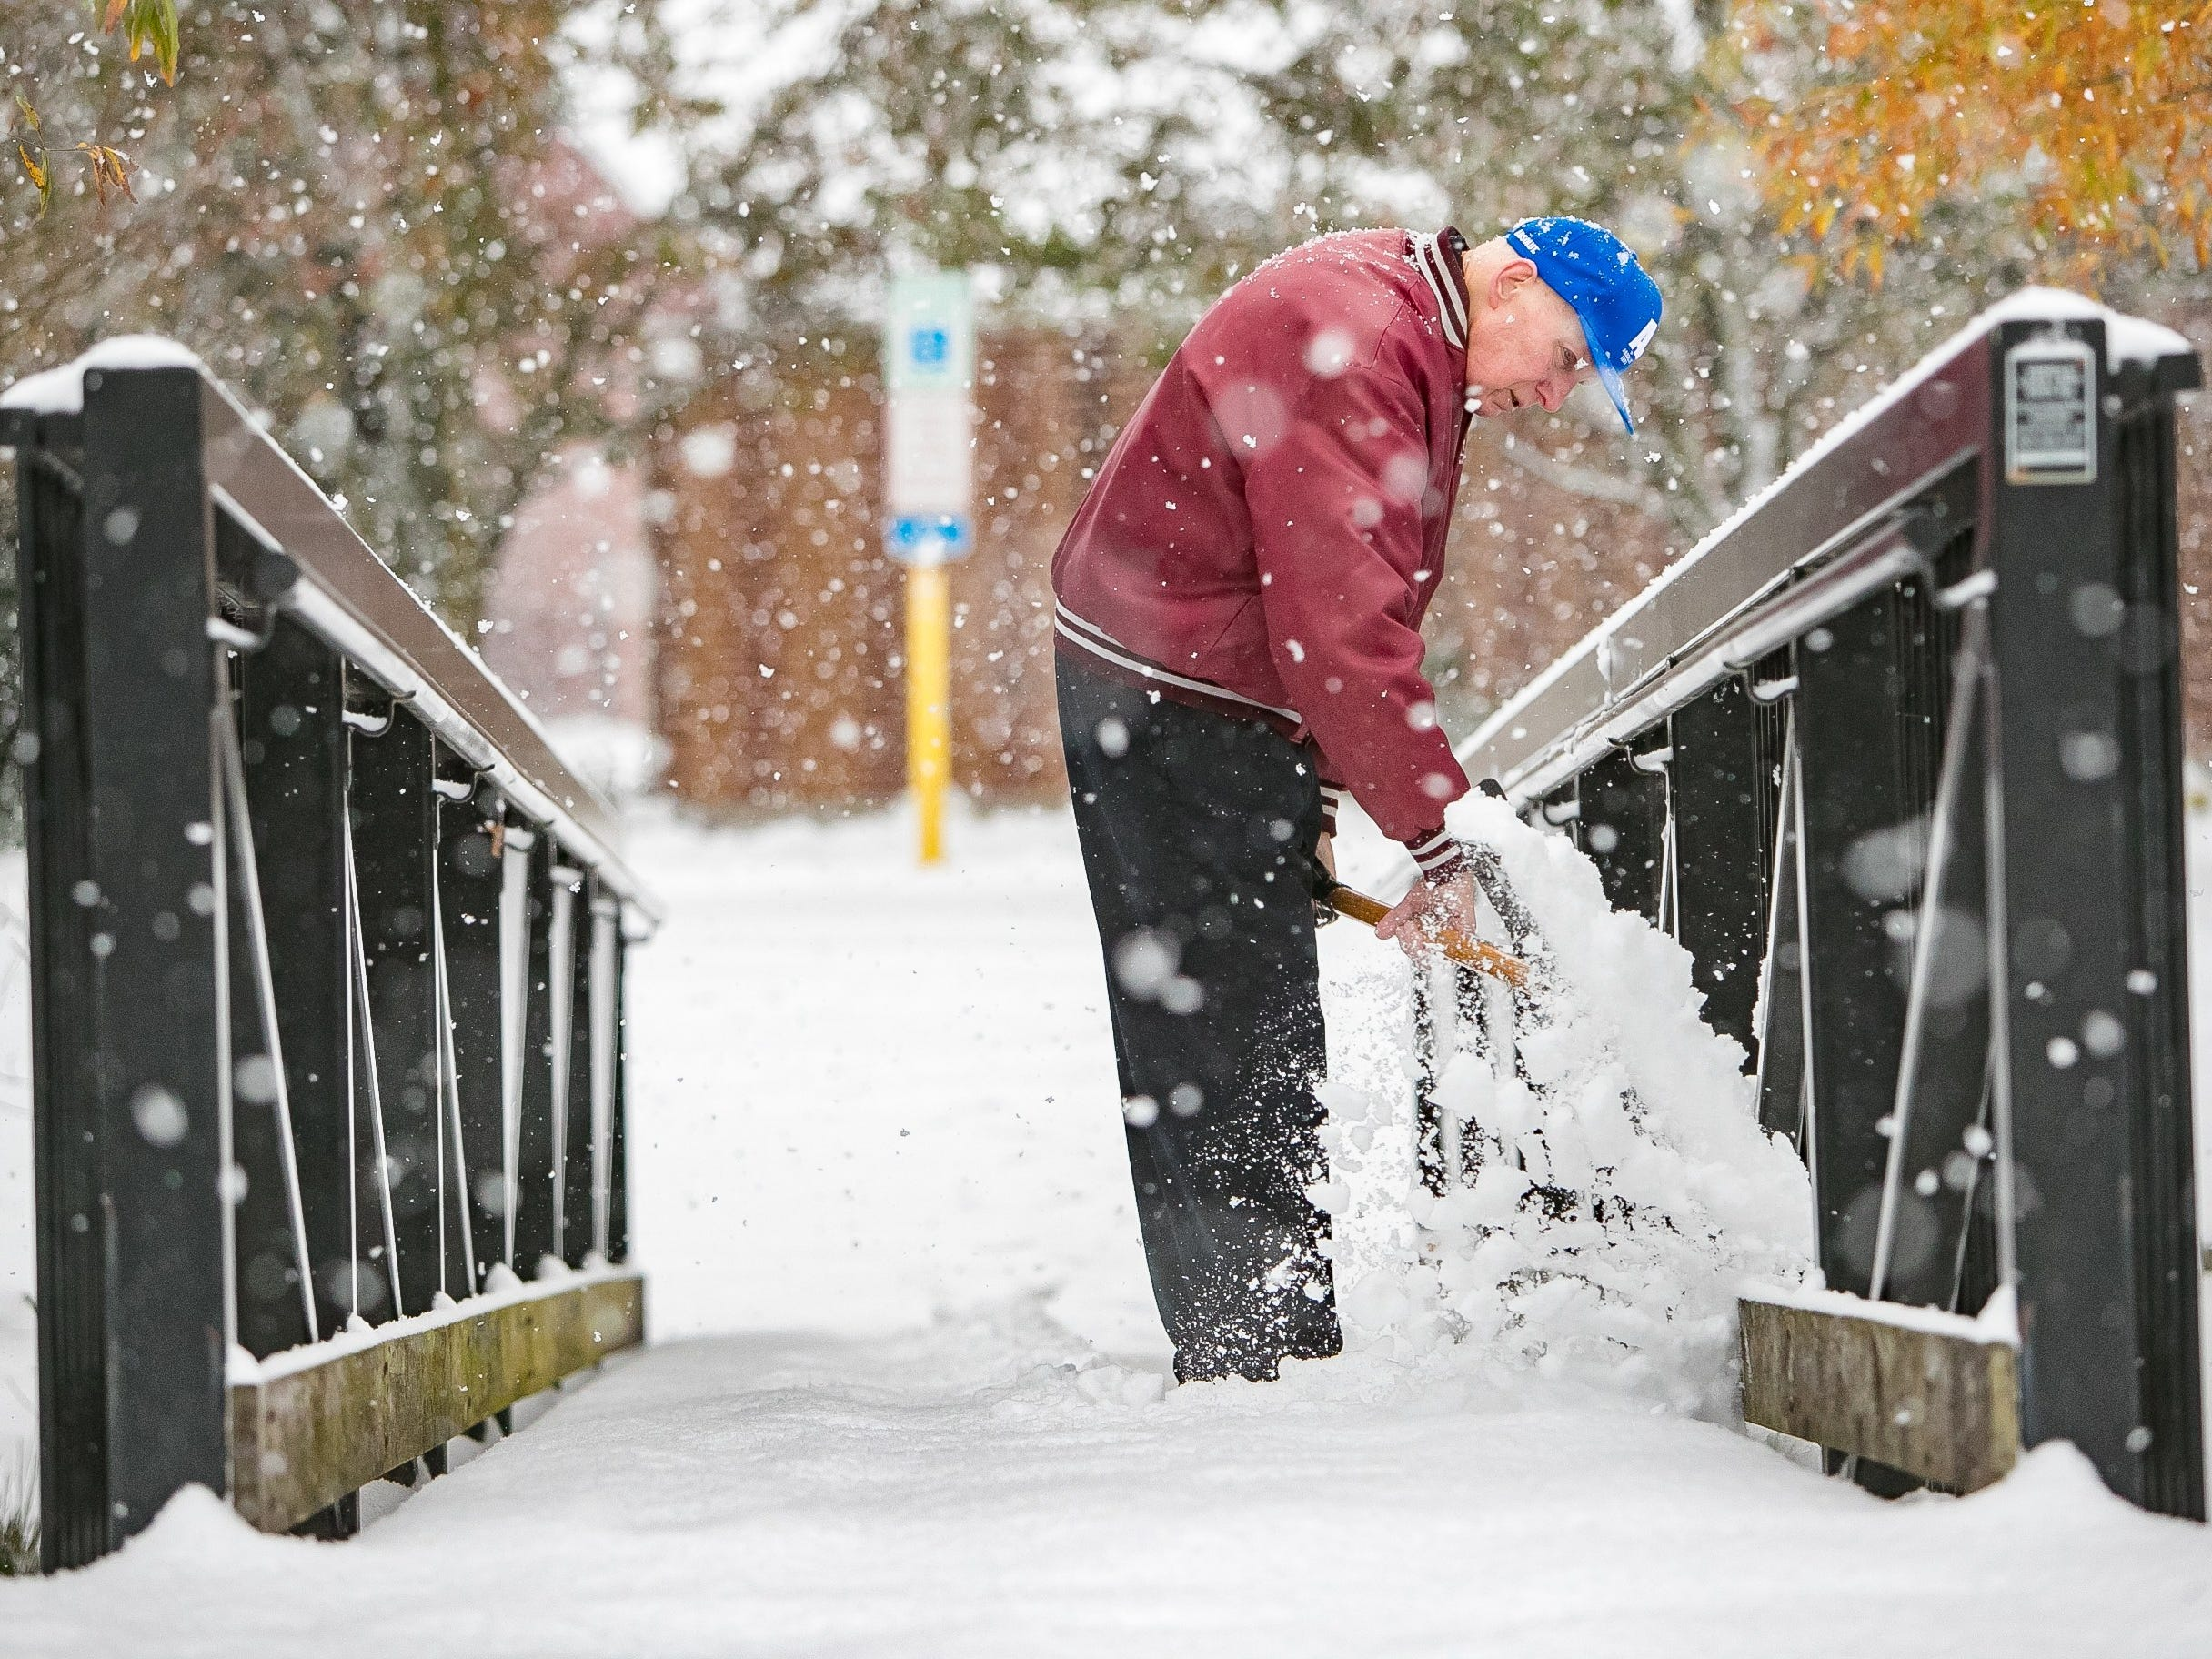 """I wasn't expecting this"", says Fred Long with Hockessin Fire Hall as he shovels snow off the walk bridge in Hockessin as snow rolls into Delaware and the surrounding area."